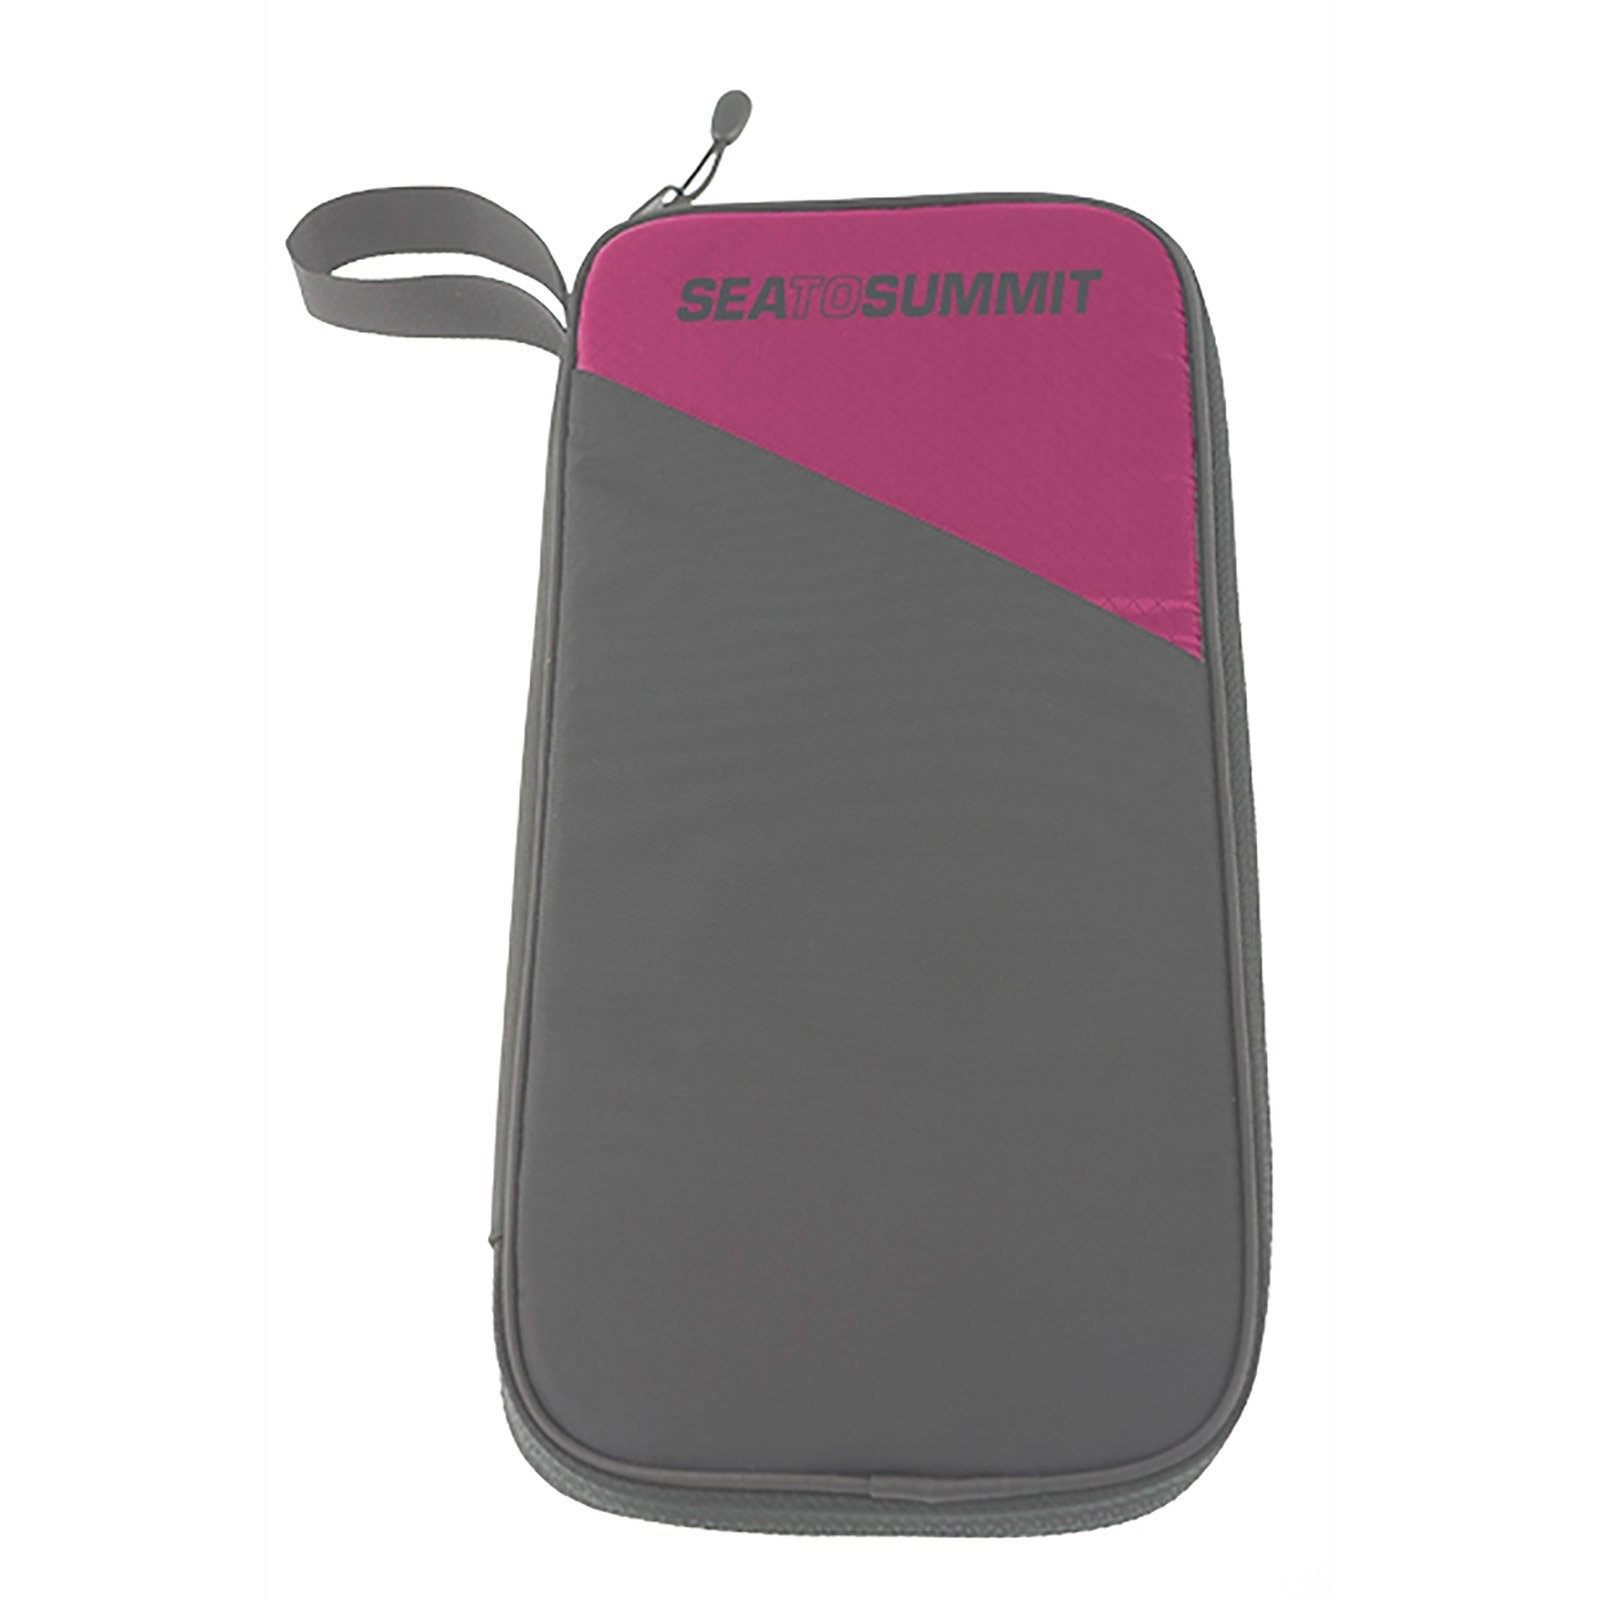 ví đựng passport Seato Summit